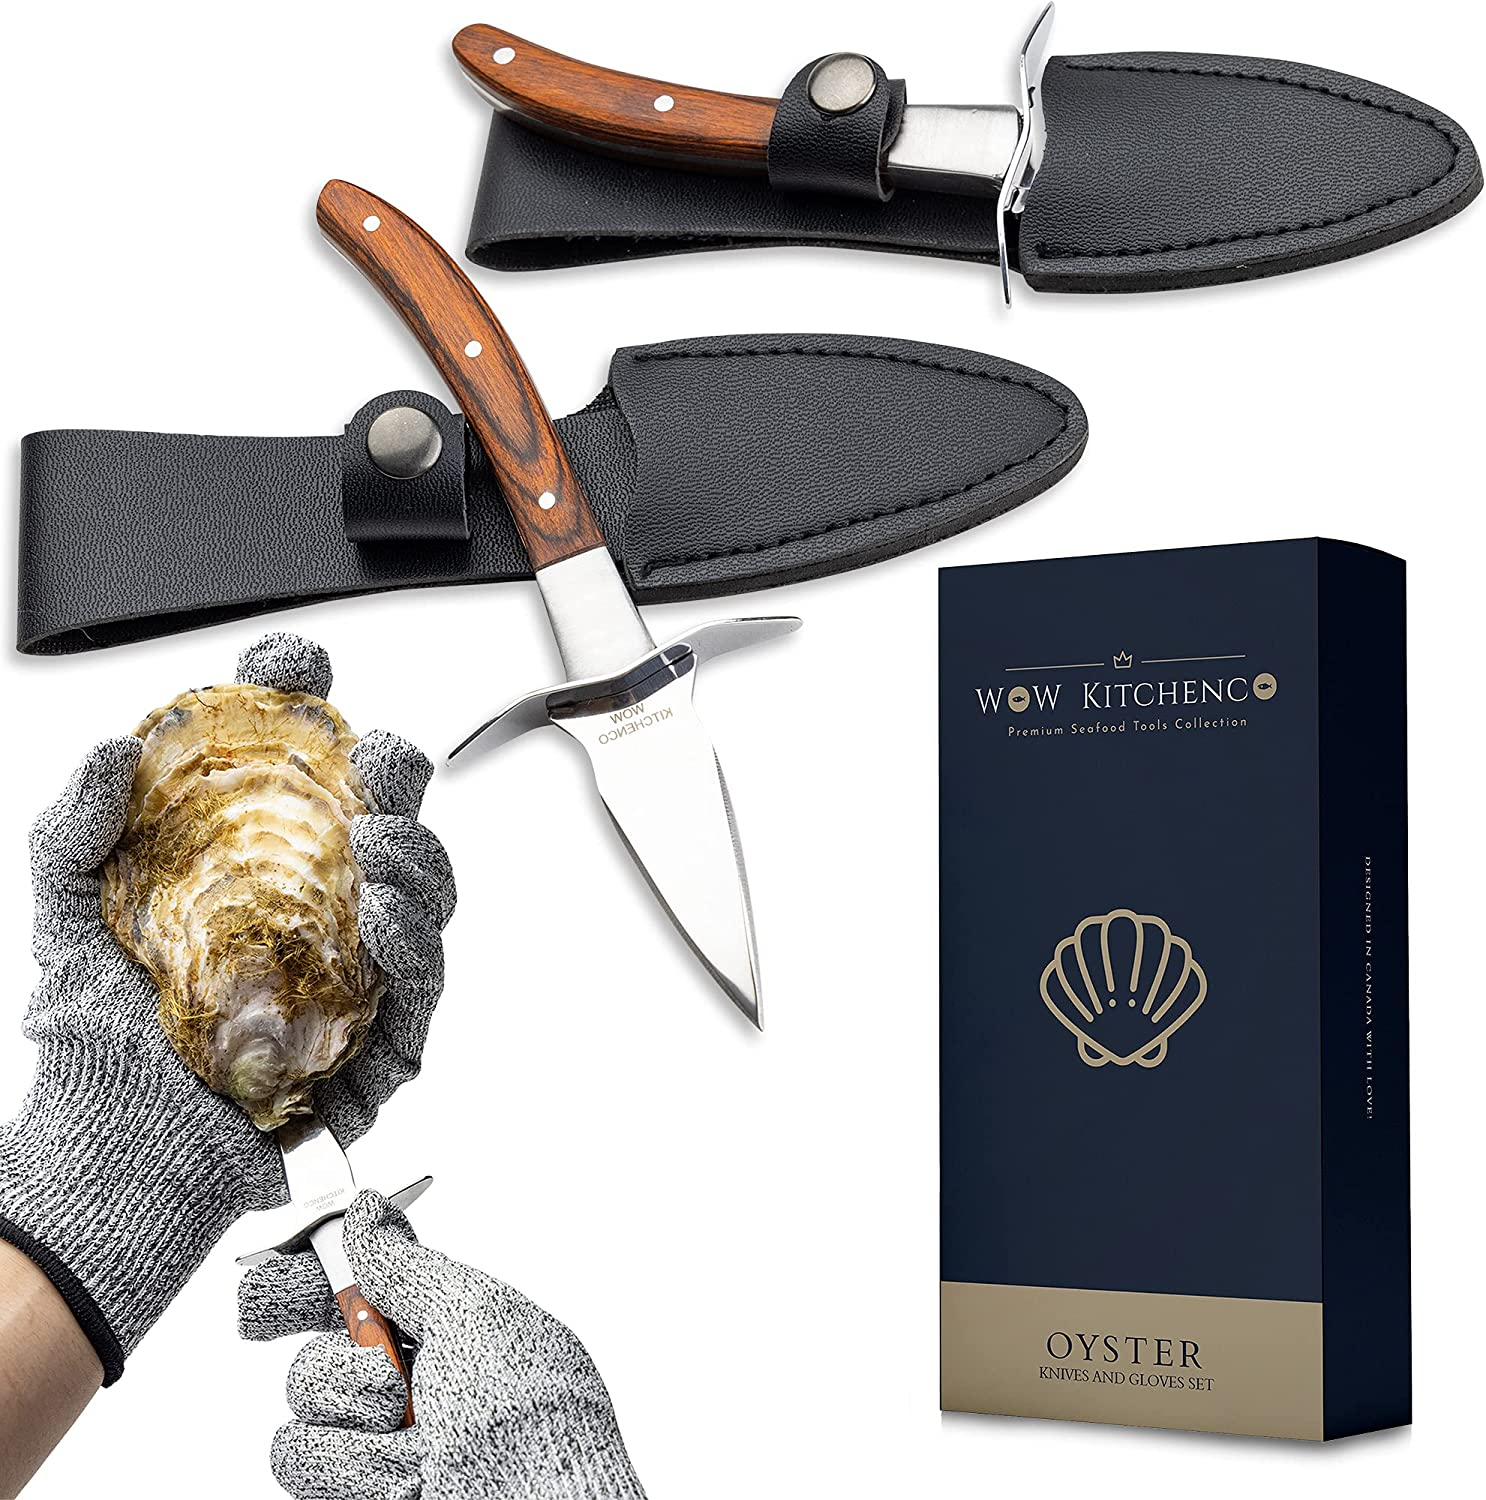 Set low-pricing of 2 Oyster Max 53% OFF Shucking Knives - Includ Protection with 5 Level